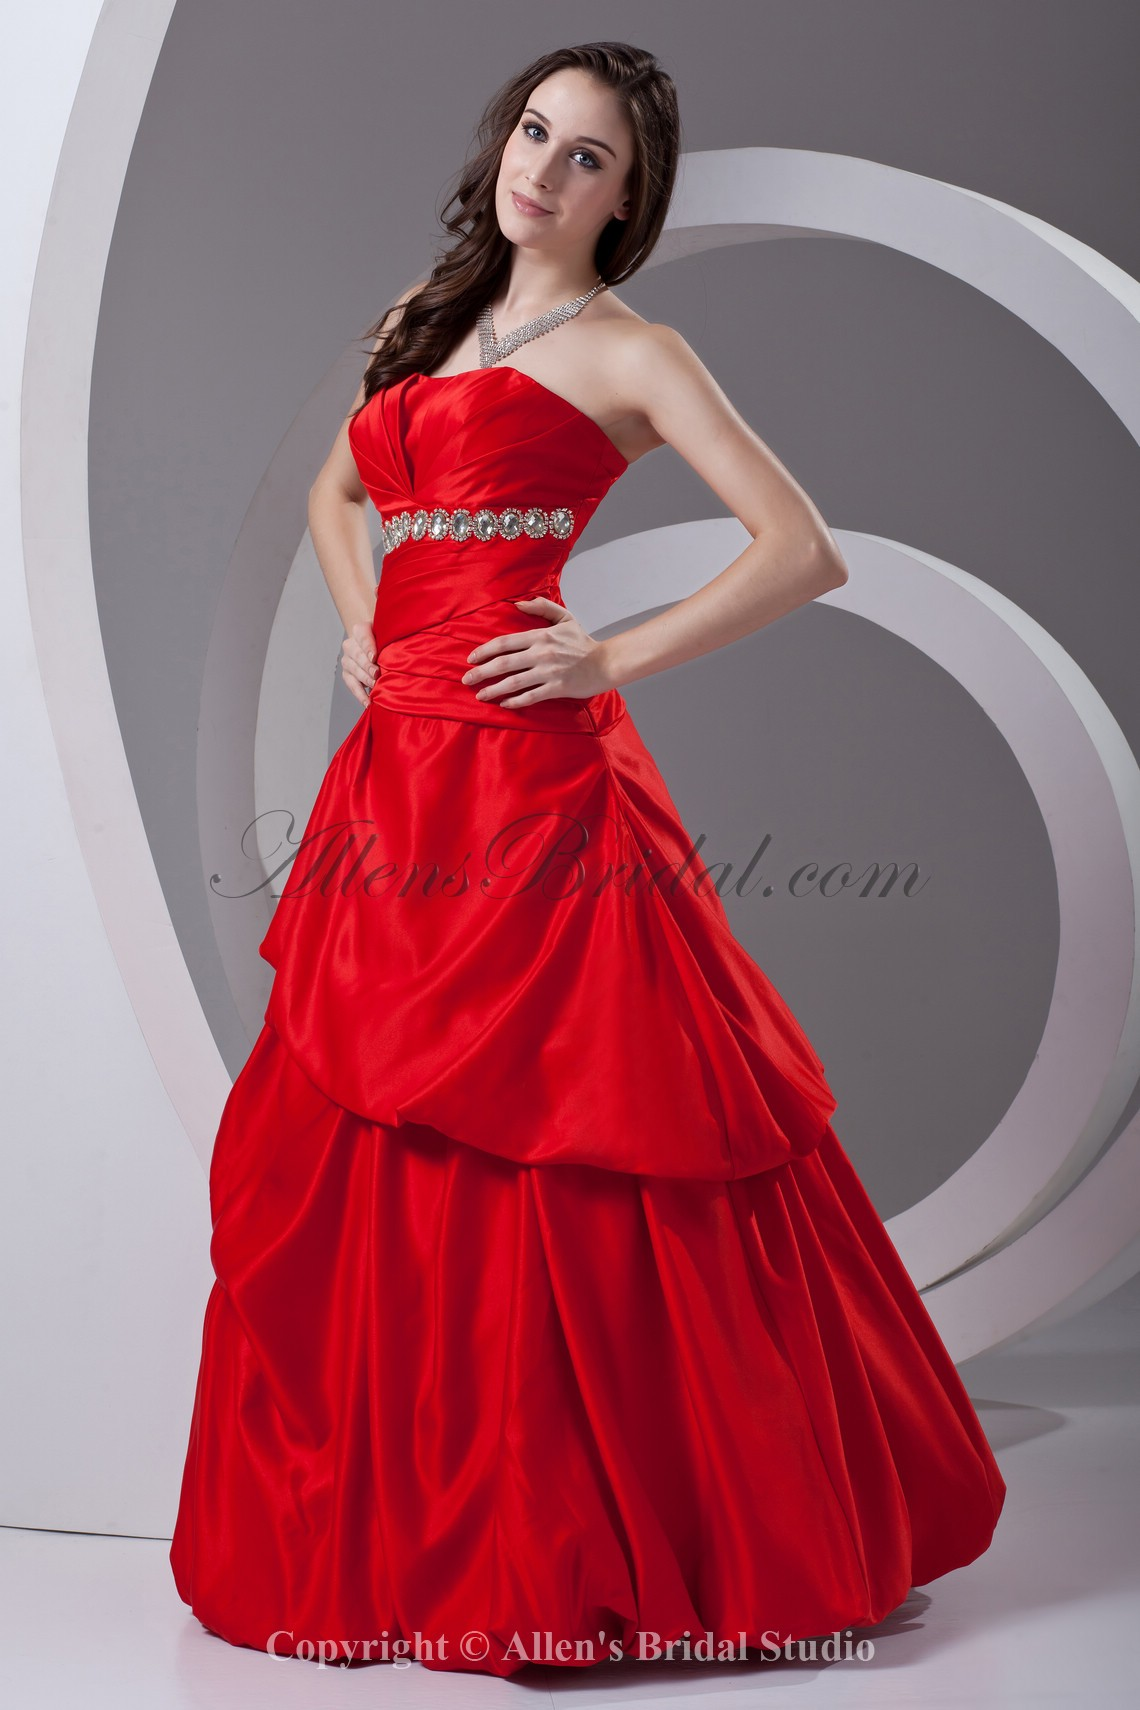 /361-2886/satin-sweetheart-neckline-ball-gown-floor-length-crystals-prom-dress.jpg